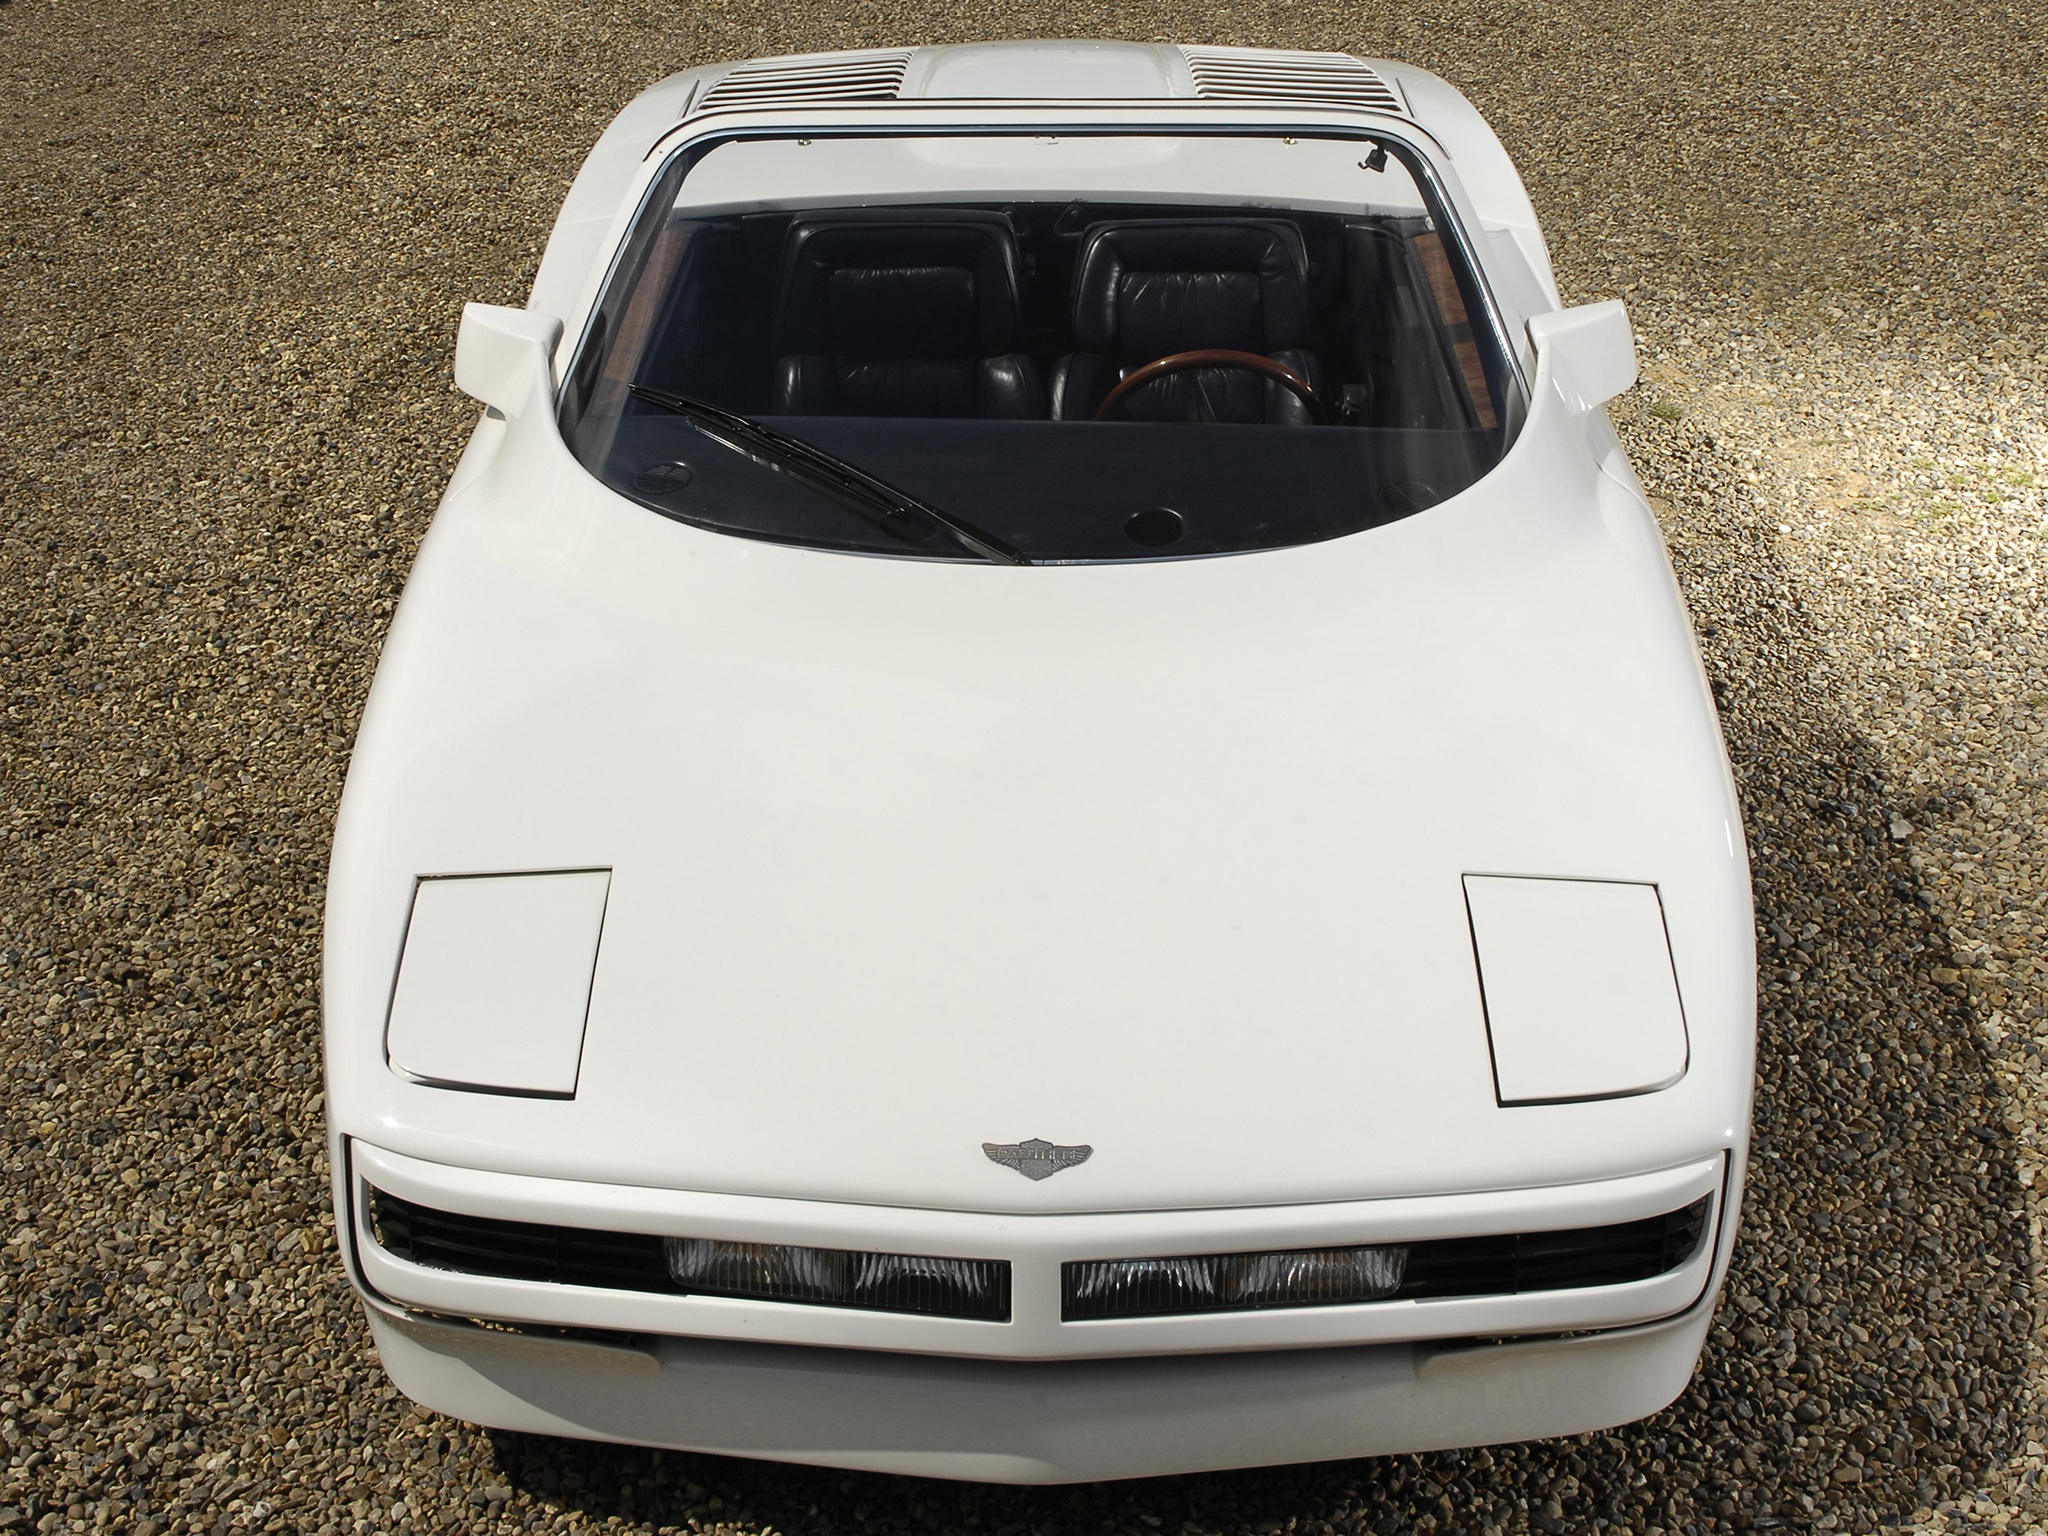 Top 10 Fastest Cars >> Panther 6 Six (1977) - Old Concept Cars